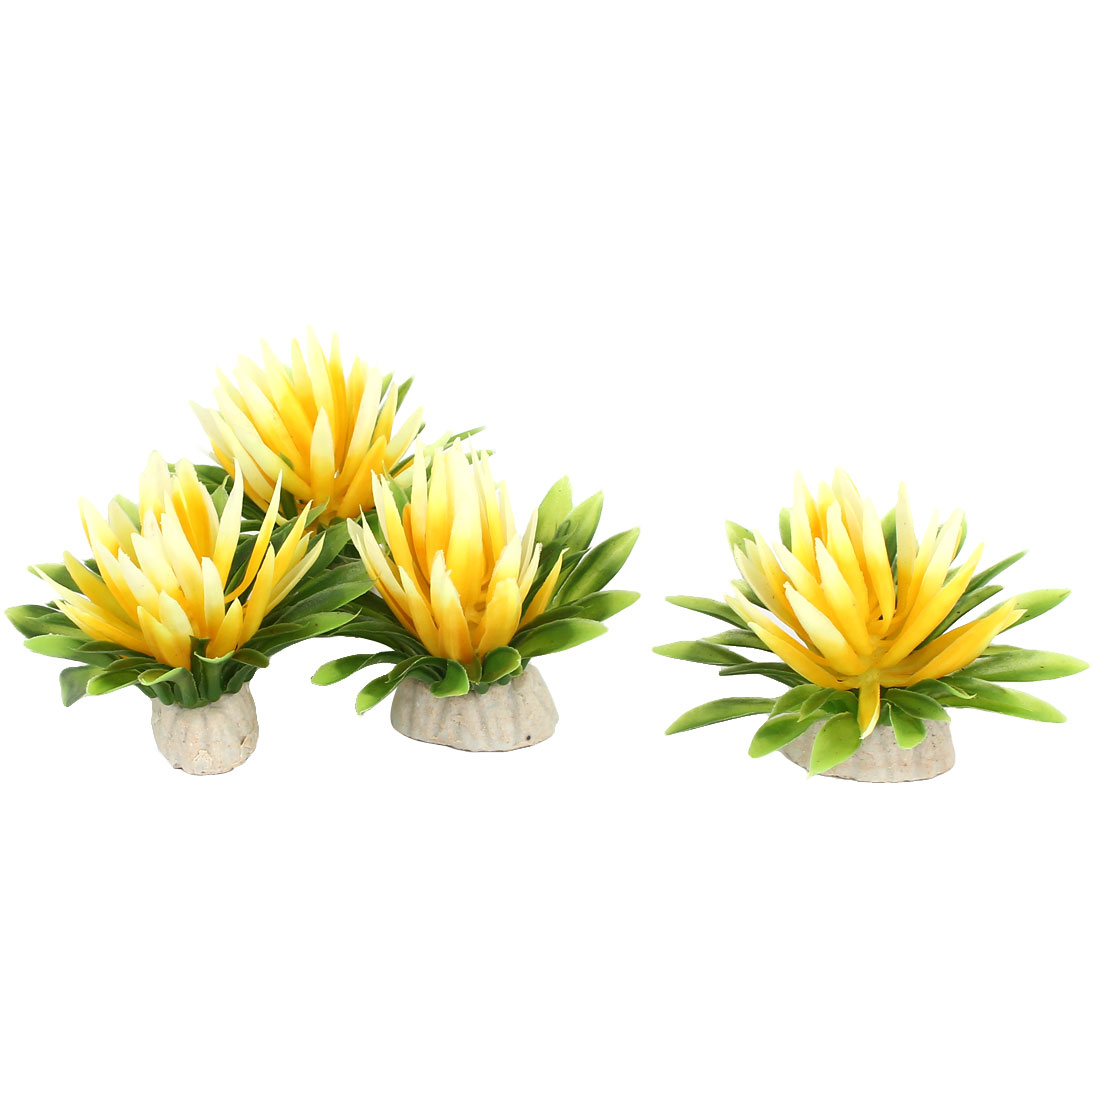 Aquarium Fish Tank Bowl Artificial Fake Flower Plant Decor Ornament Yellow 4Pcs